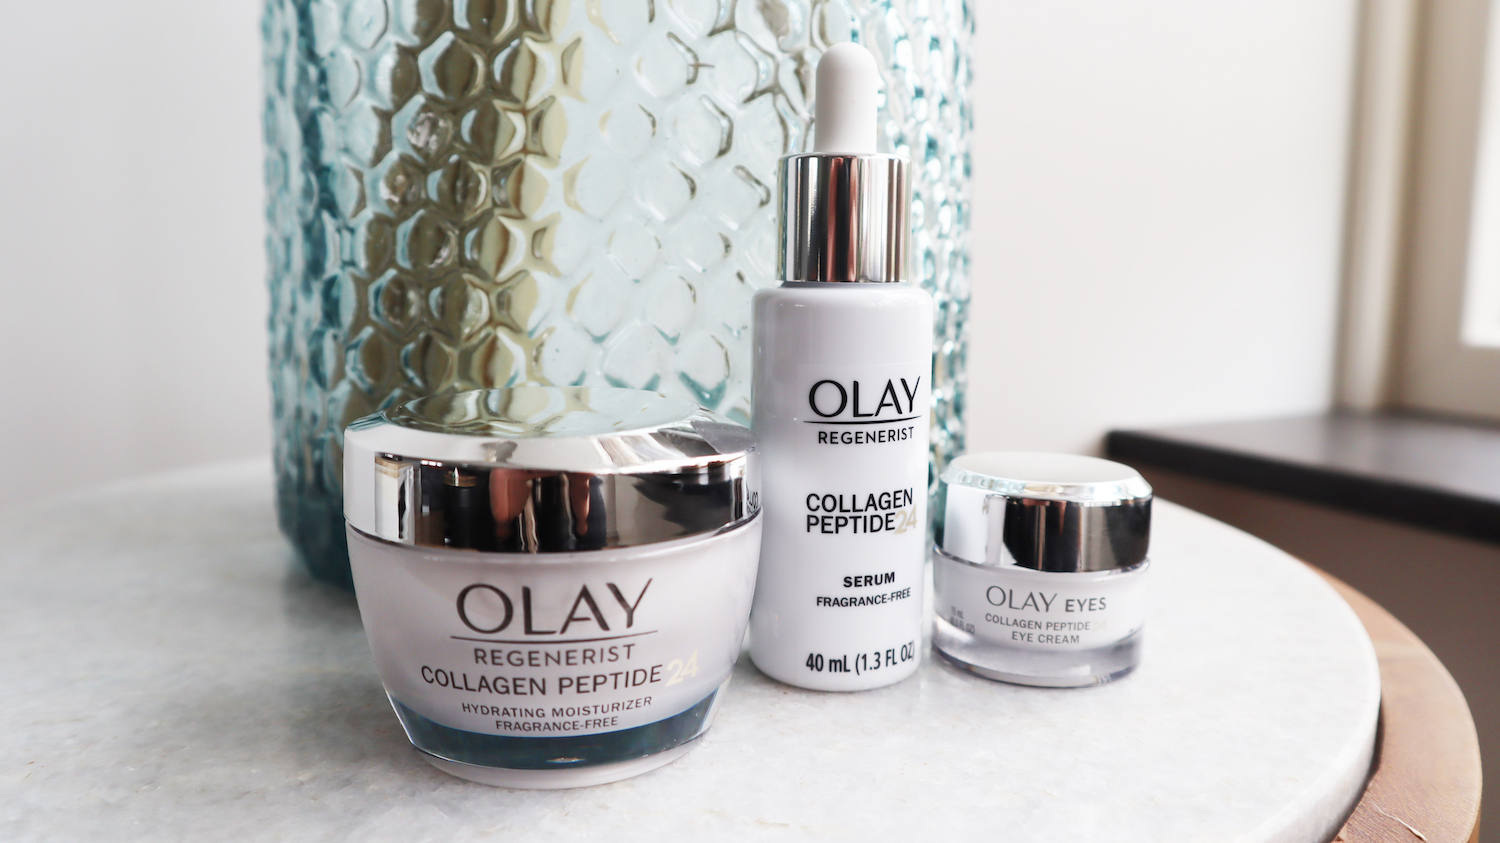 Olay Collagen Peptide24